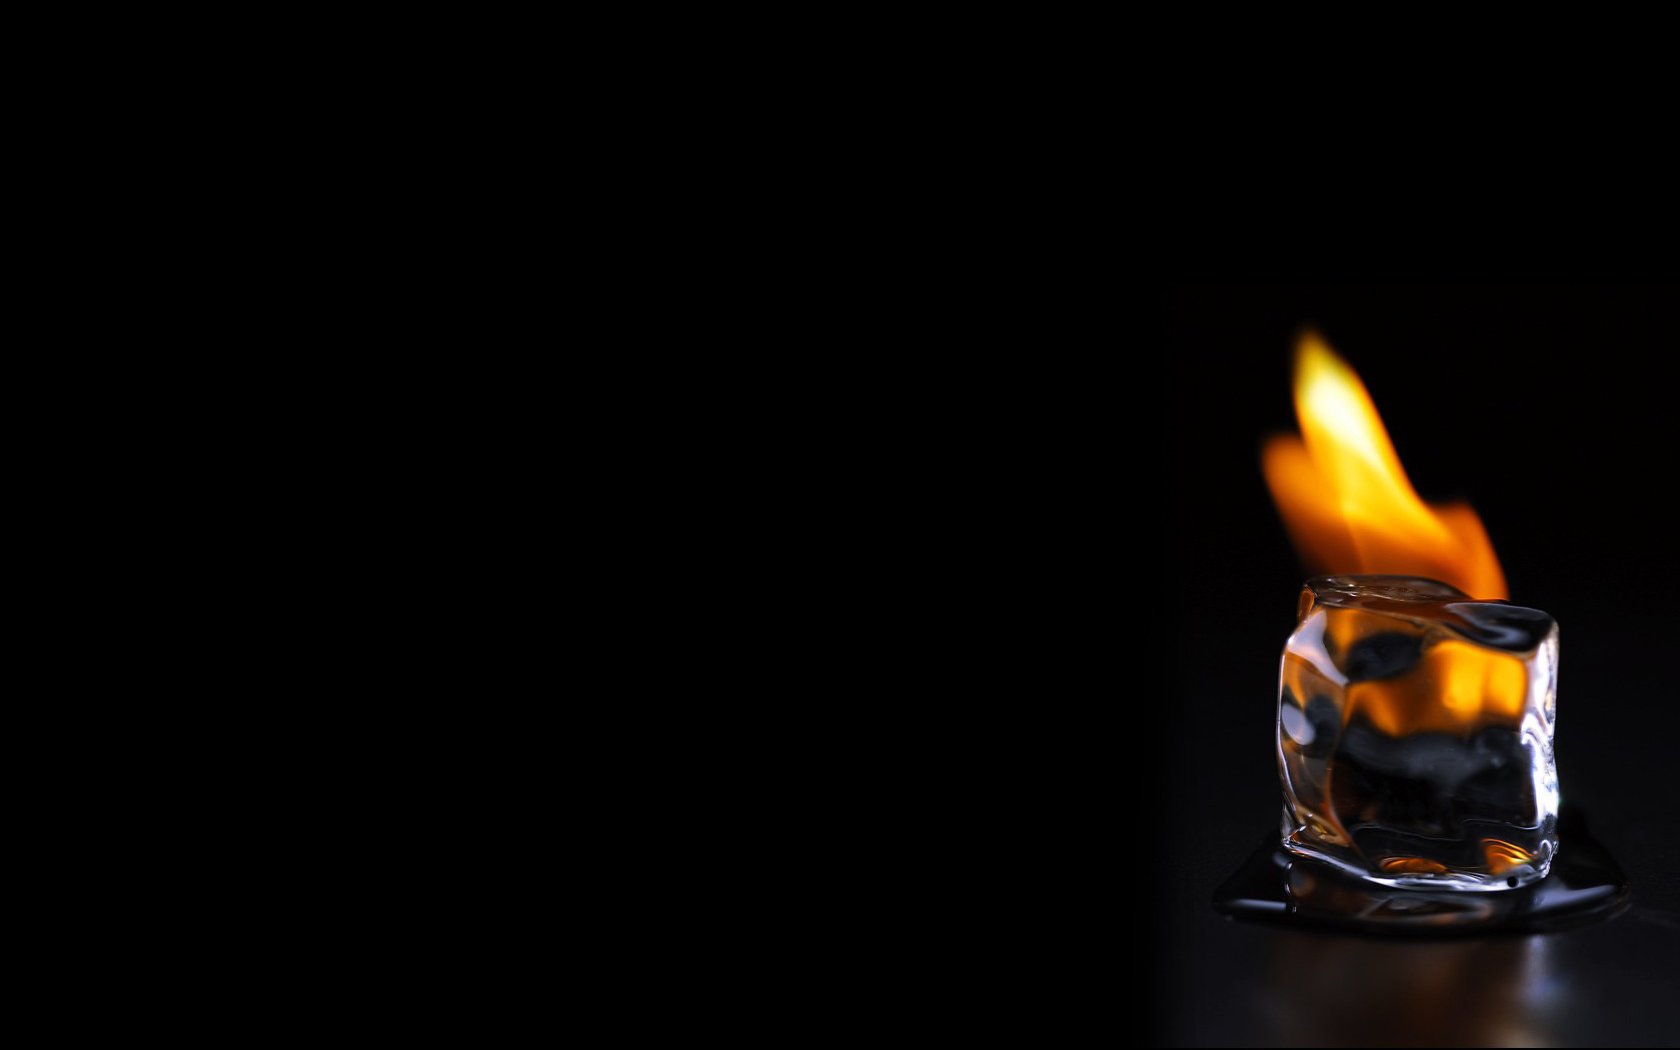 fire wallpaper for my desktop wallpapersafari